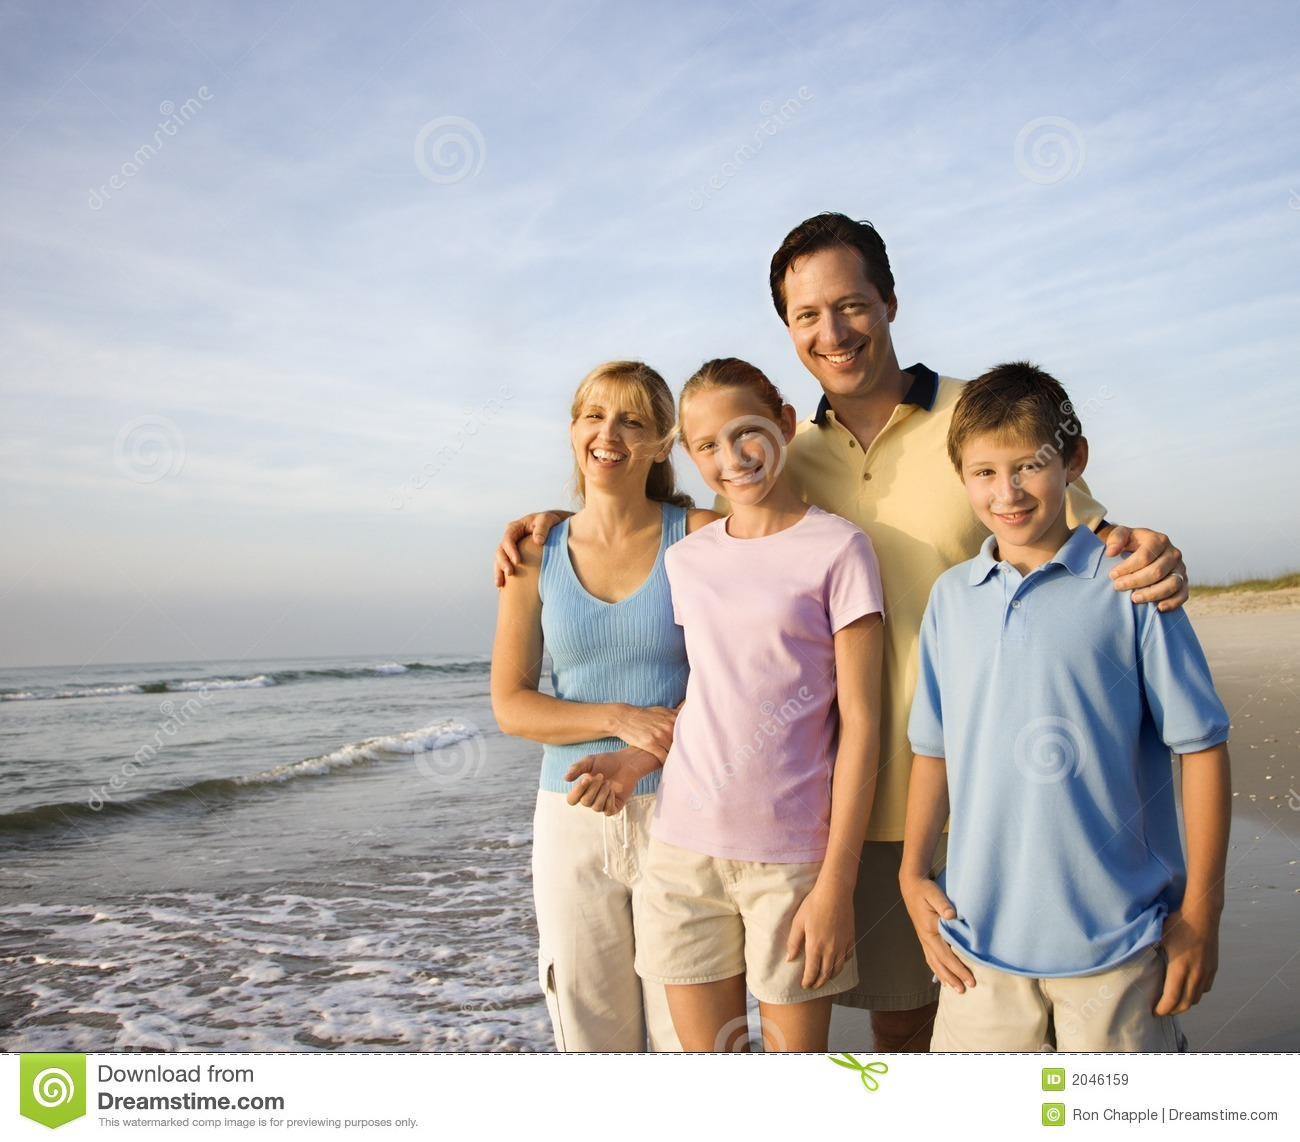 Stock Photos Royalty Free Smiling family on beach